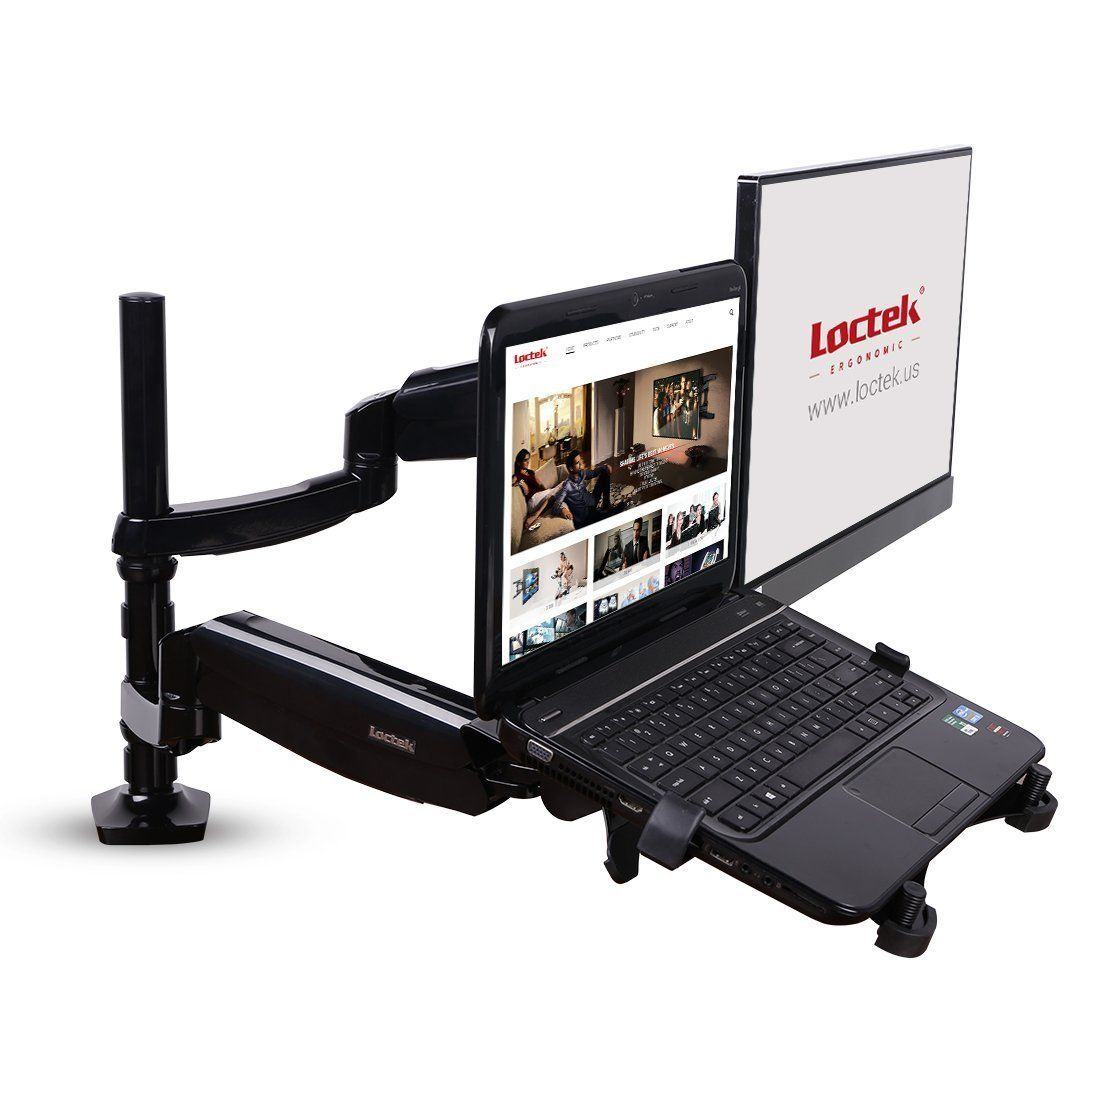 360º rotating height adjustable laptop /& Monitor mount//stand gas spring arm-Blk